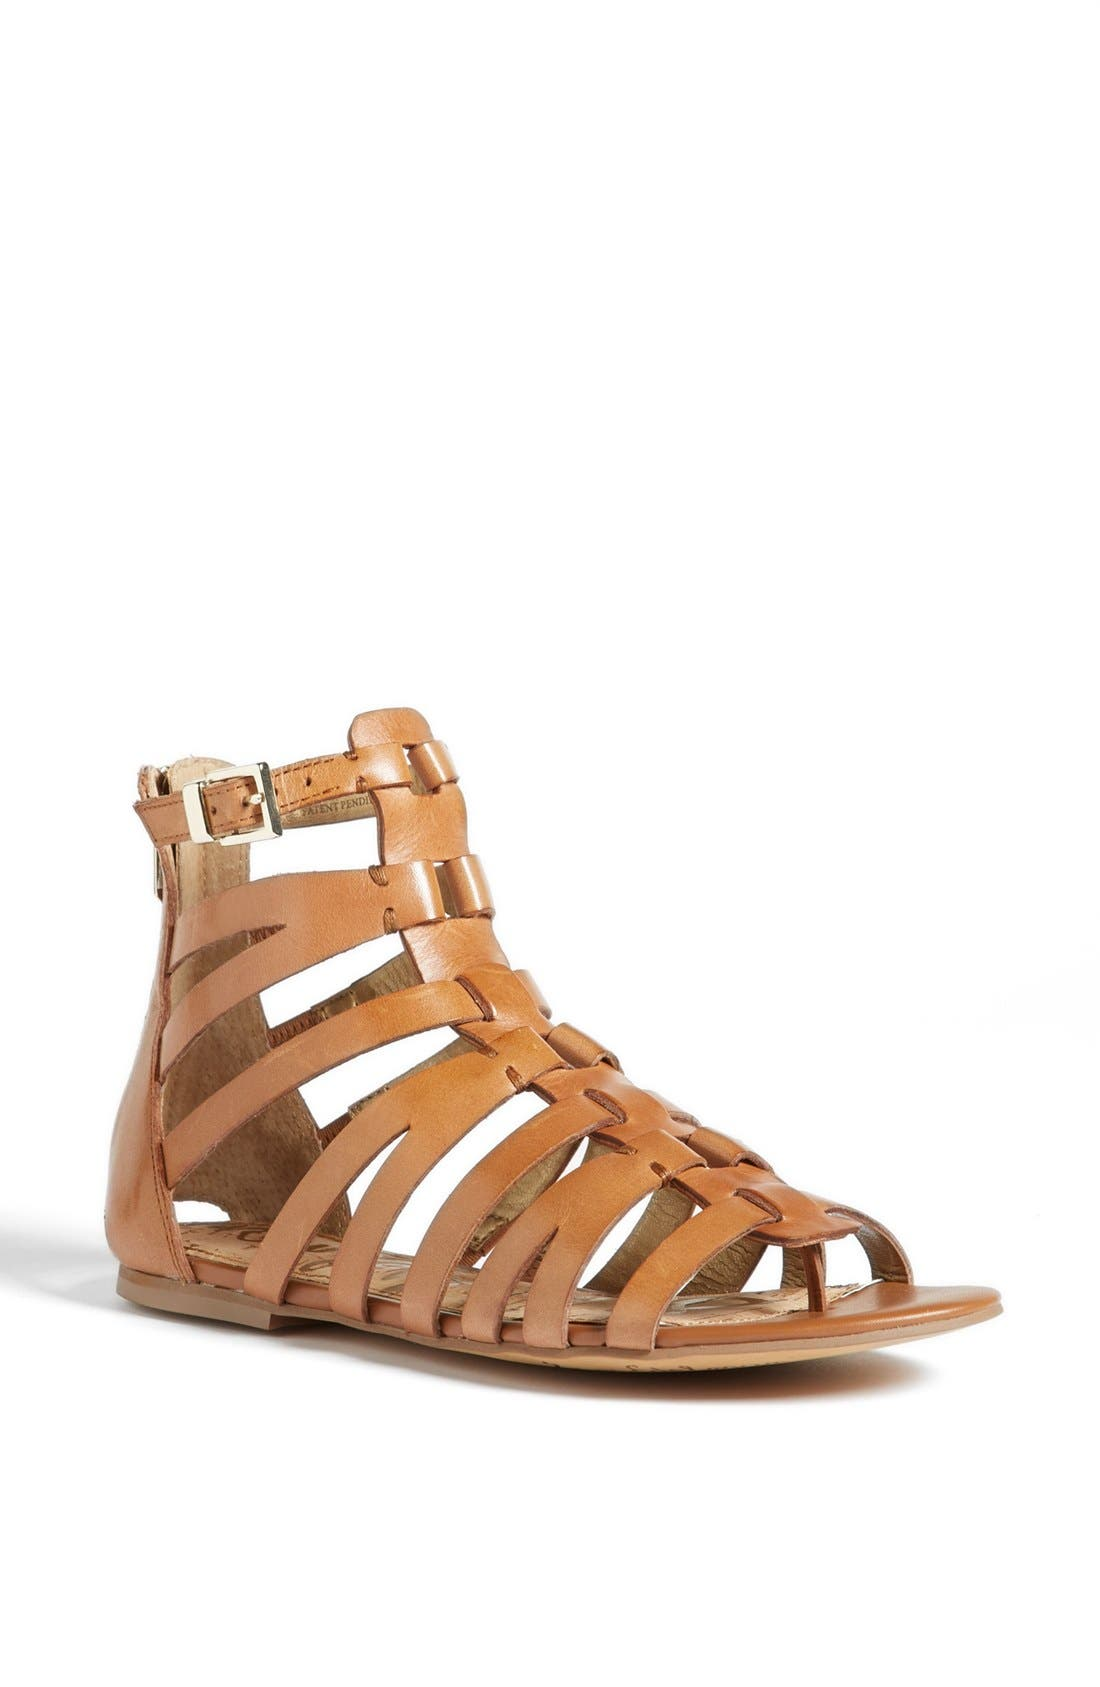 'Beck' Sandal,                             Main thumbnail 1, color,                             Saddle Leather